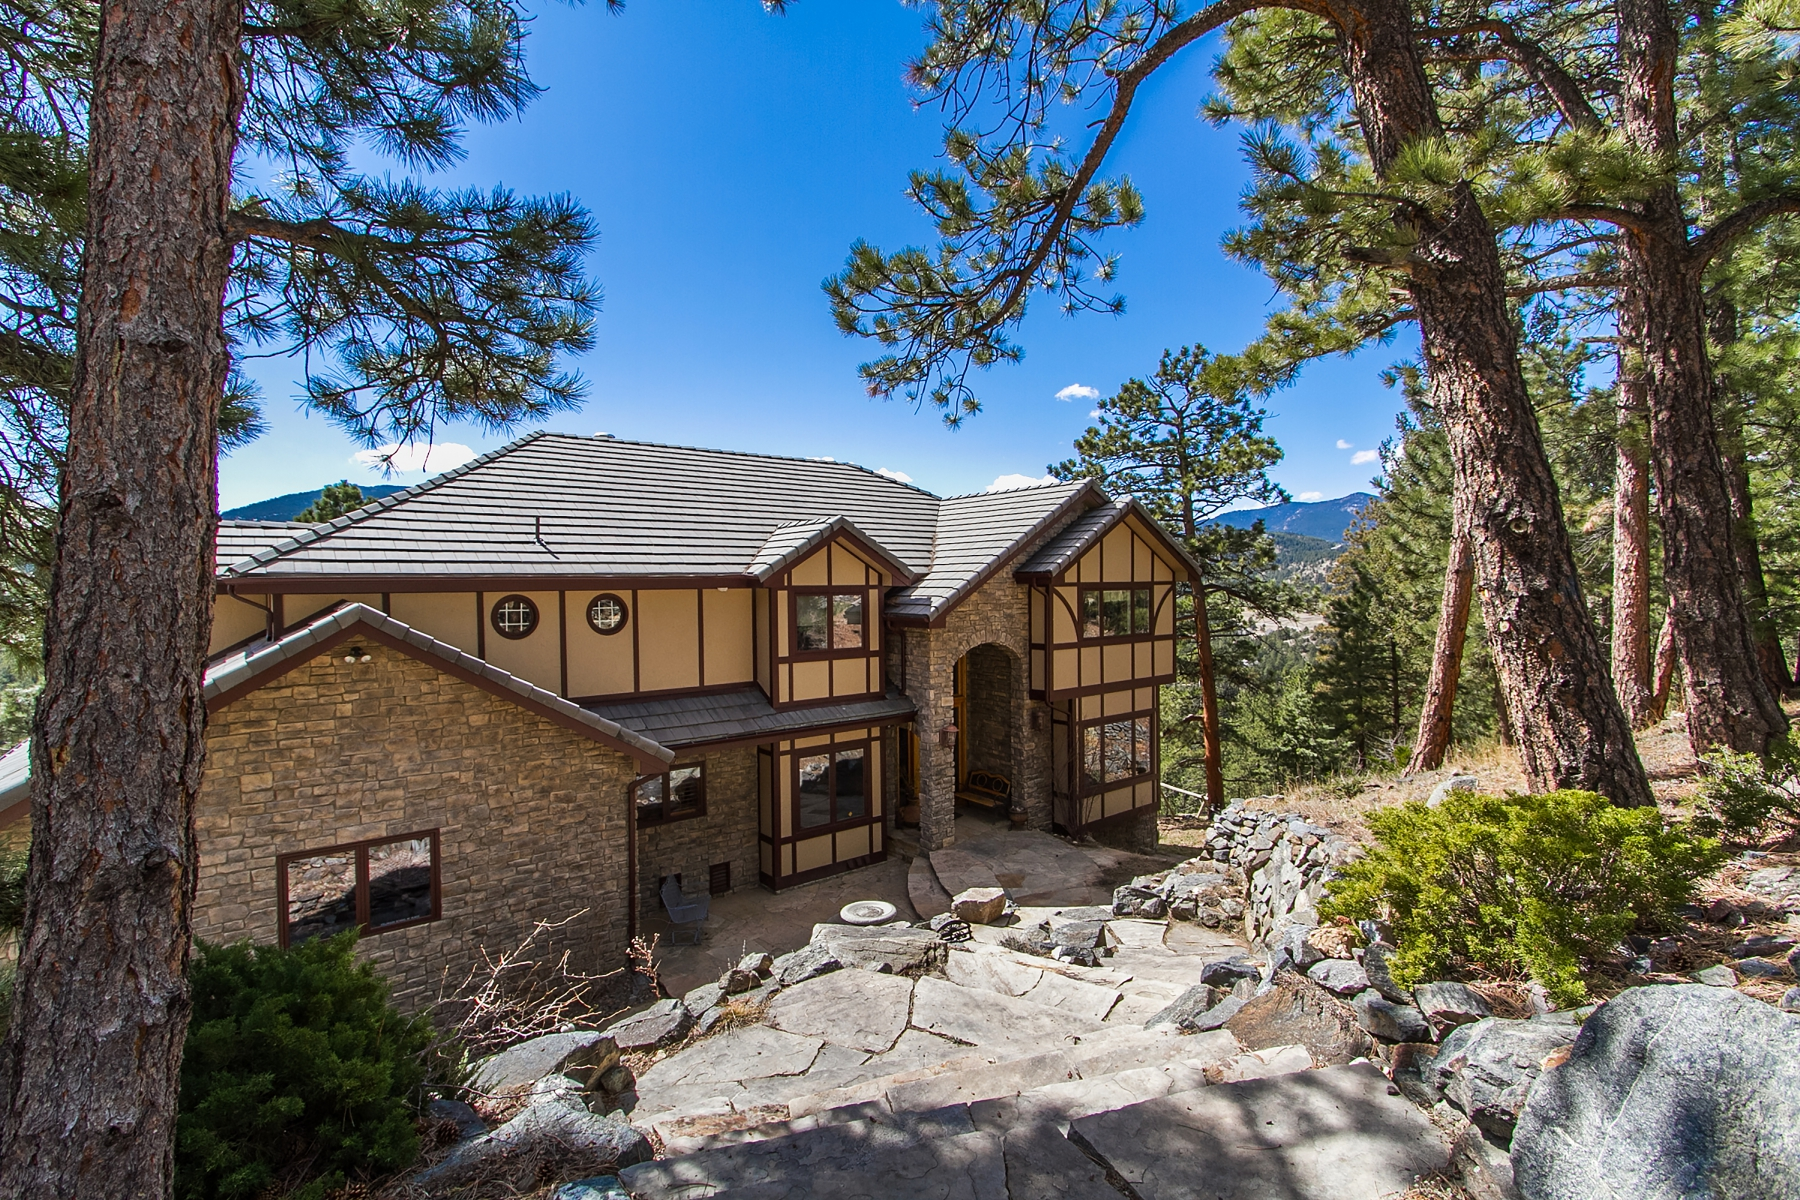 Single Family Home for Sale at Majestic Hilltop Home 484 Humphrey Drive Evergreen, Colorado 80439 United States